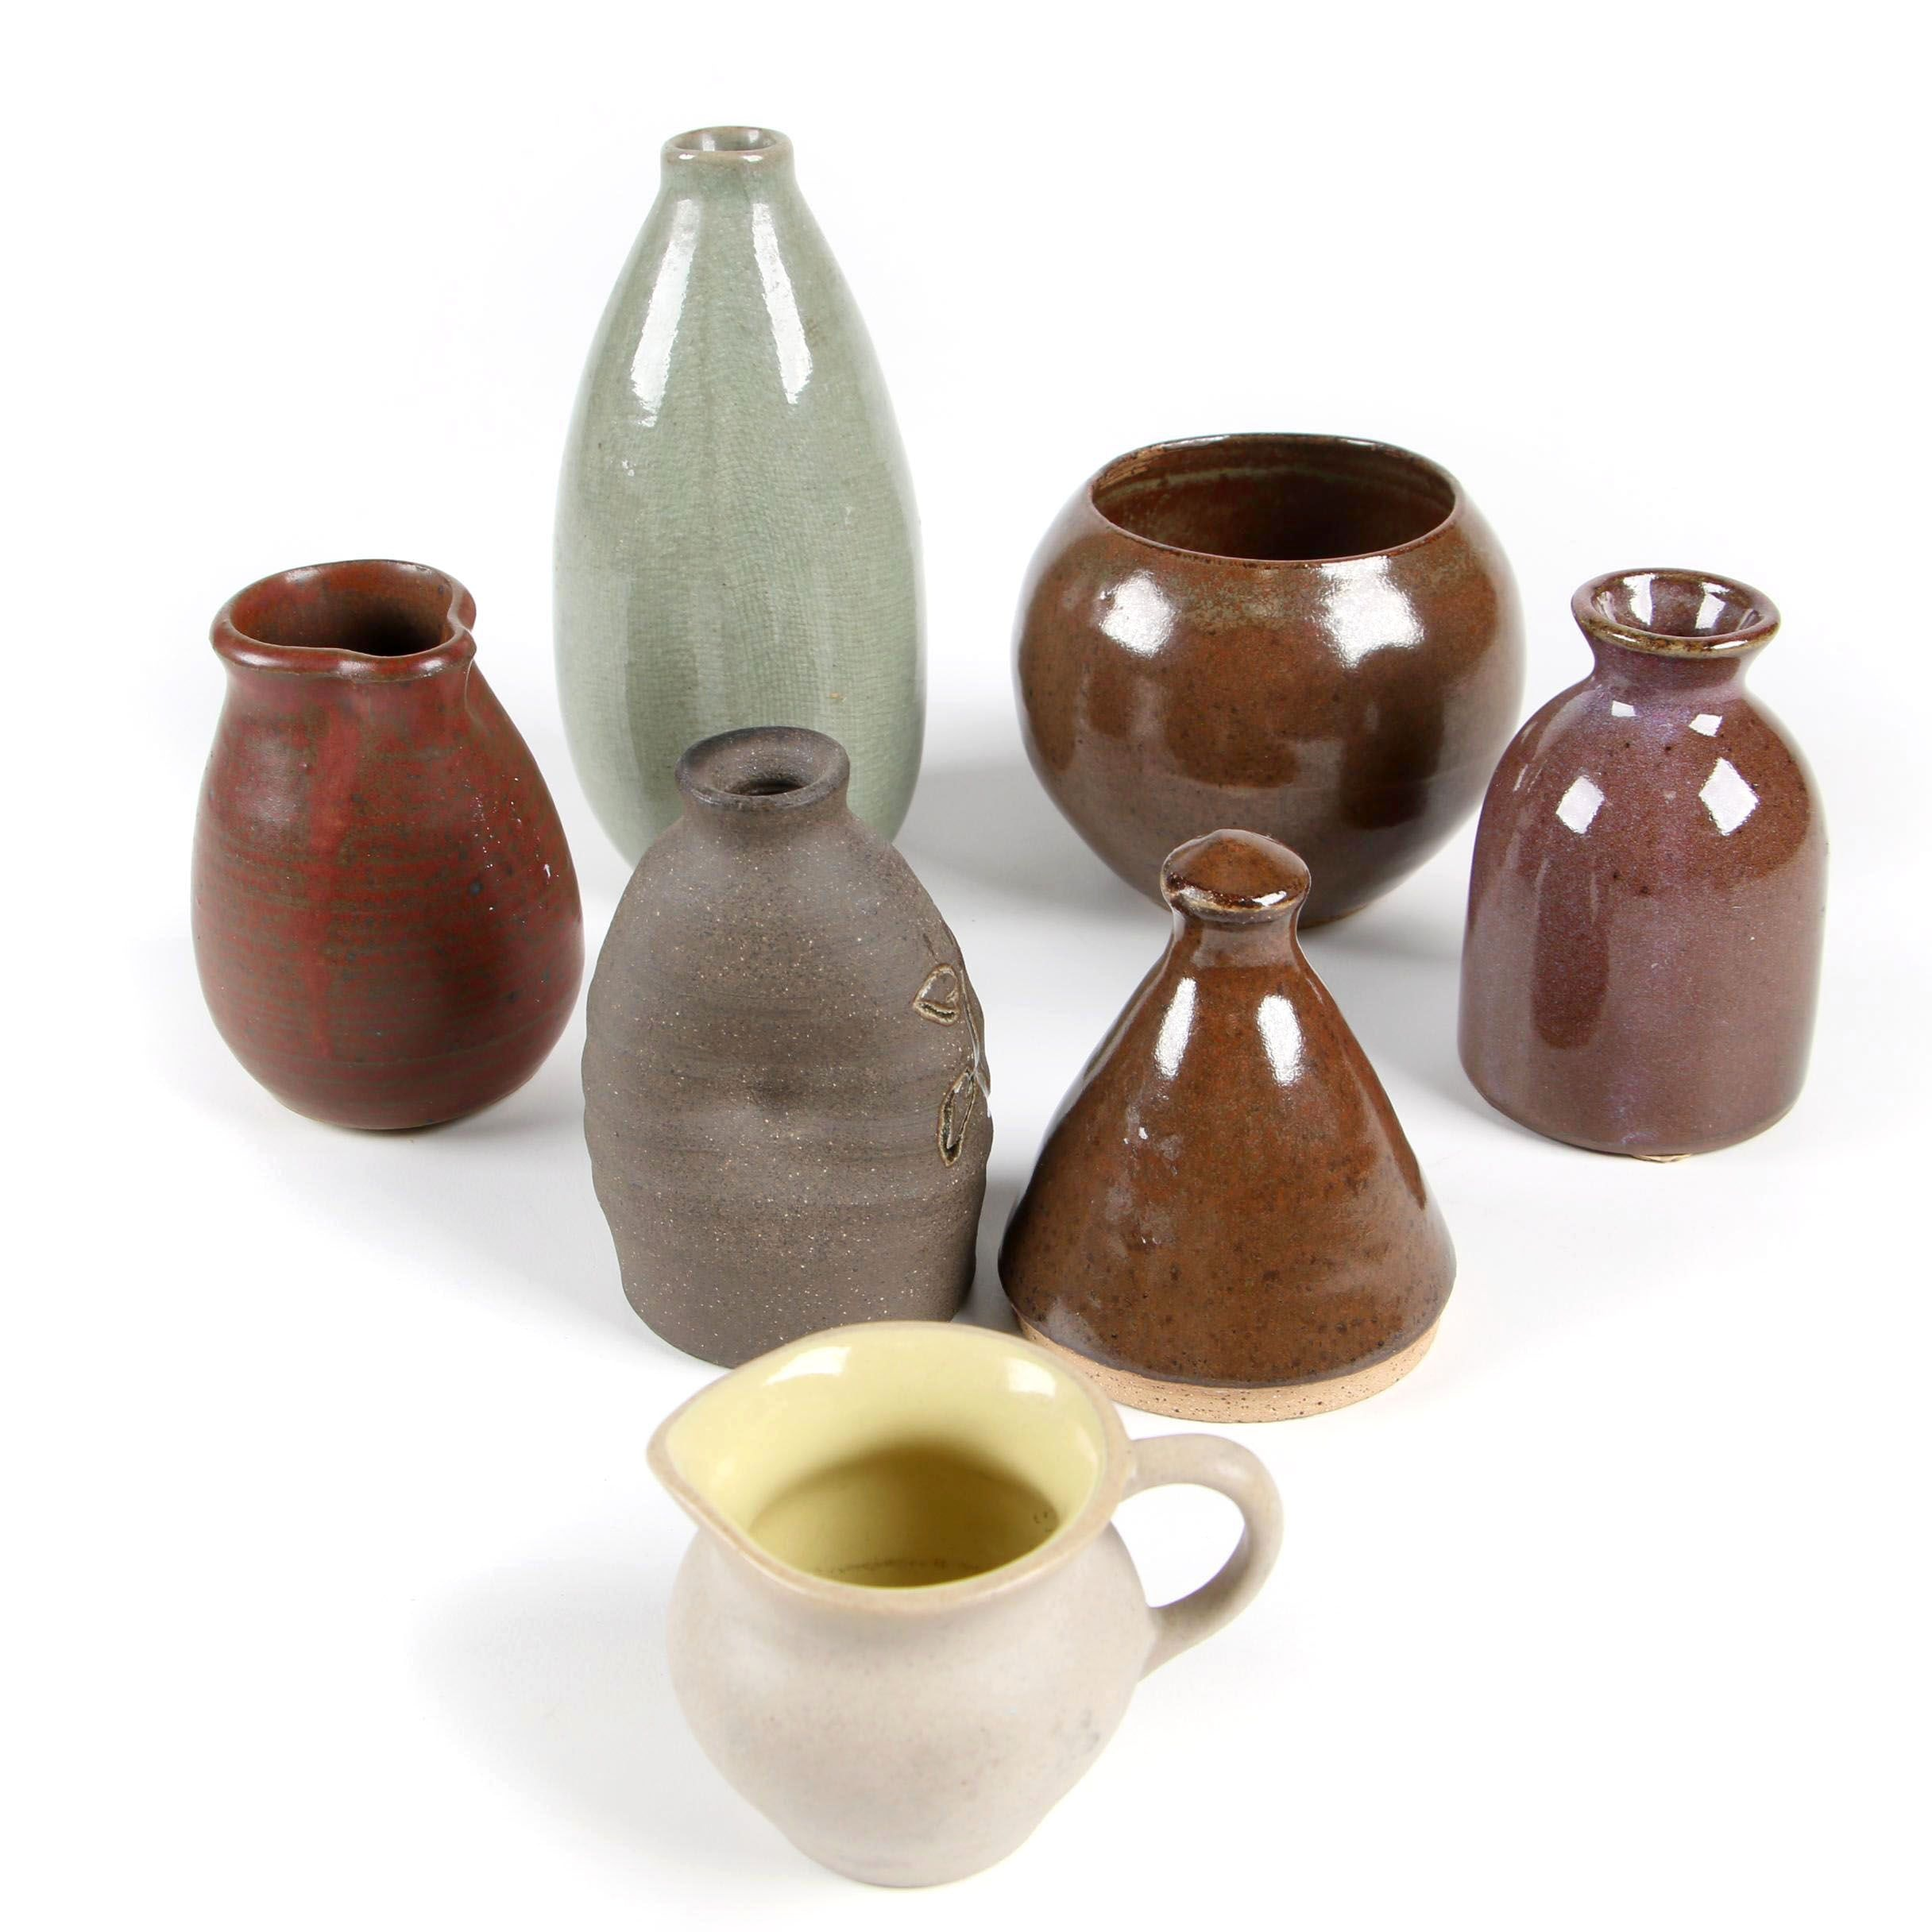 Pigeon Forge Pottery Cream Pitcher and Other Pottery Vases